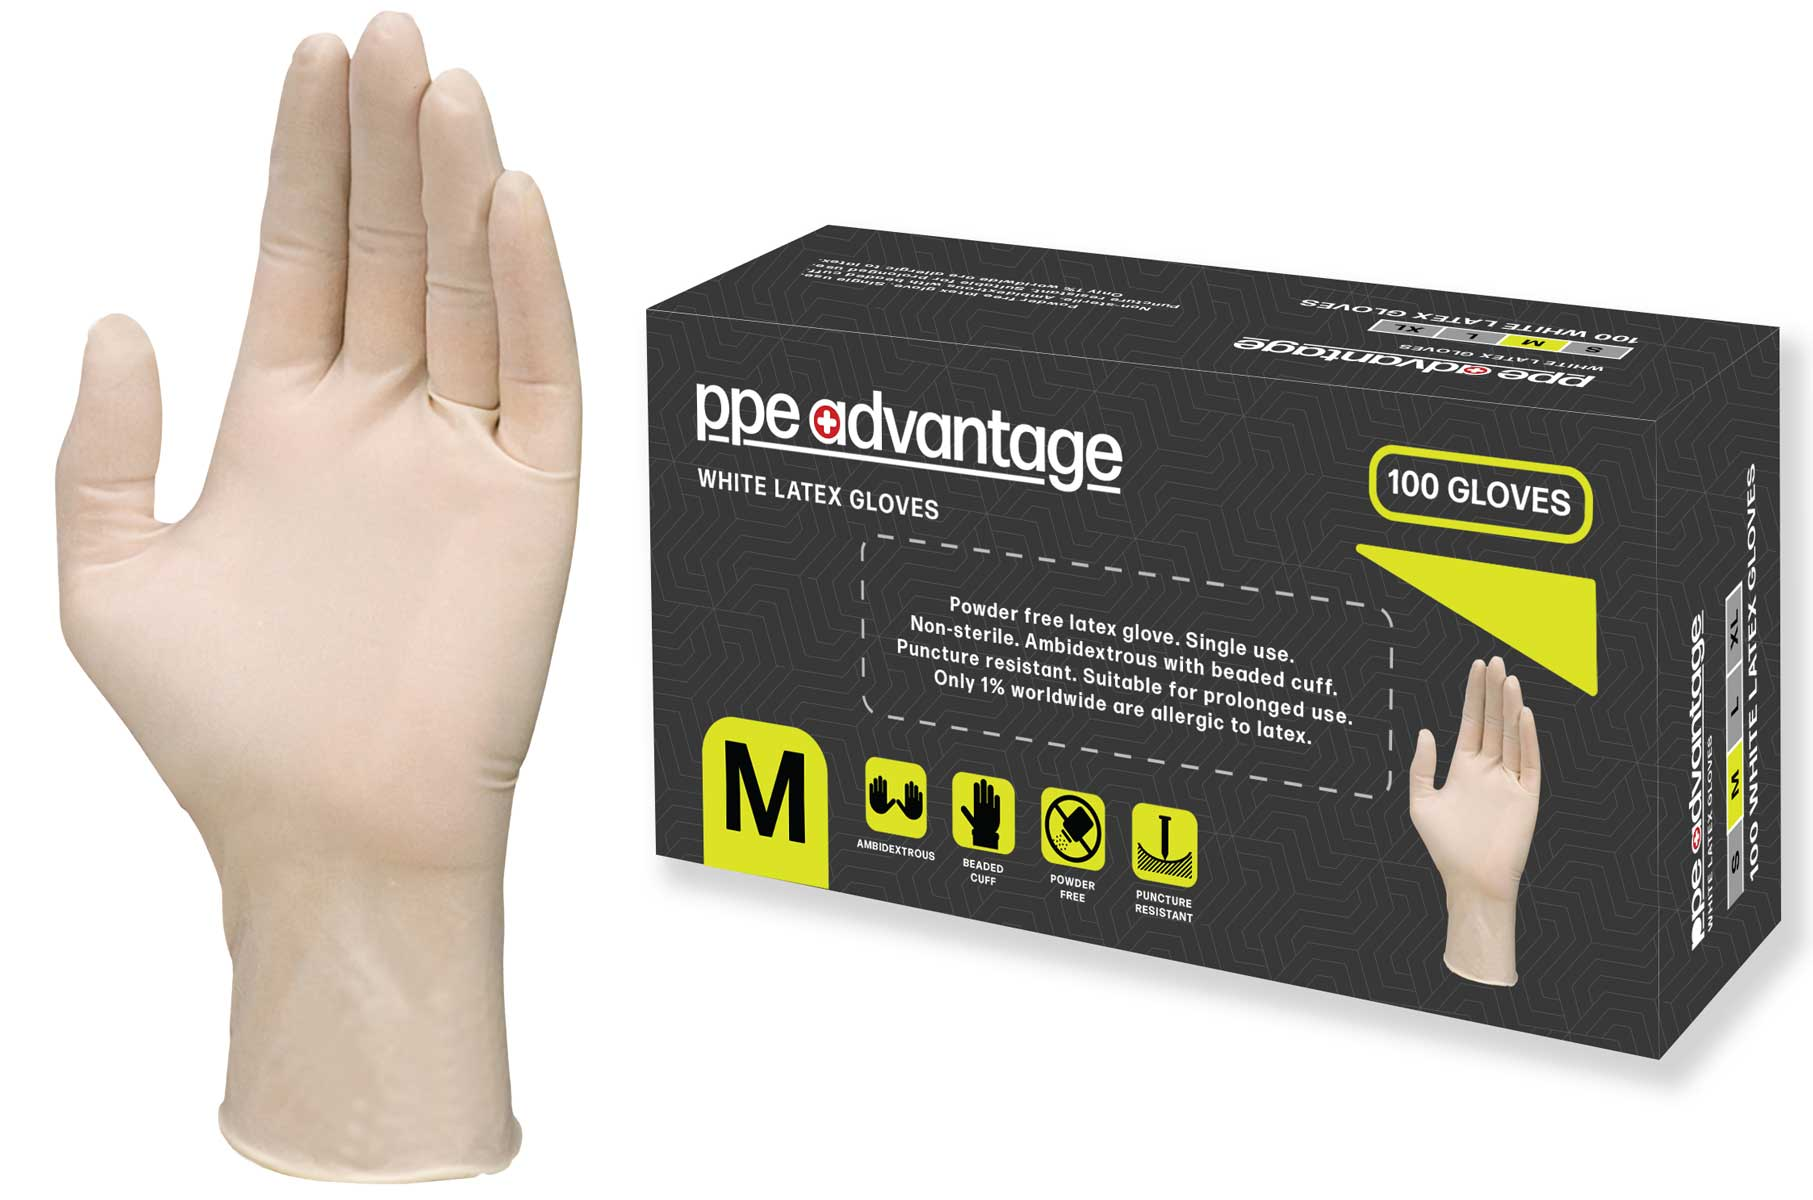 3013 PPE Advantage White Latex Gloves